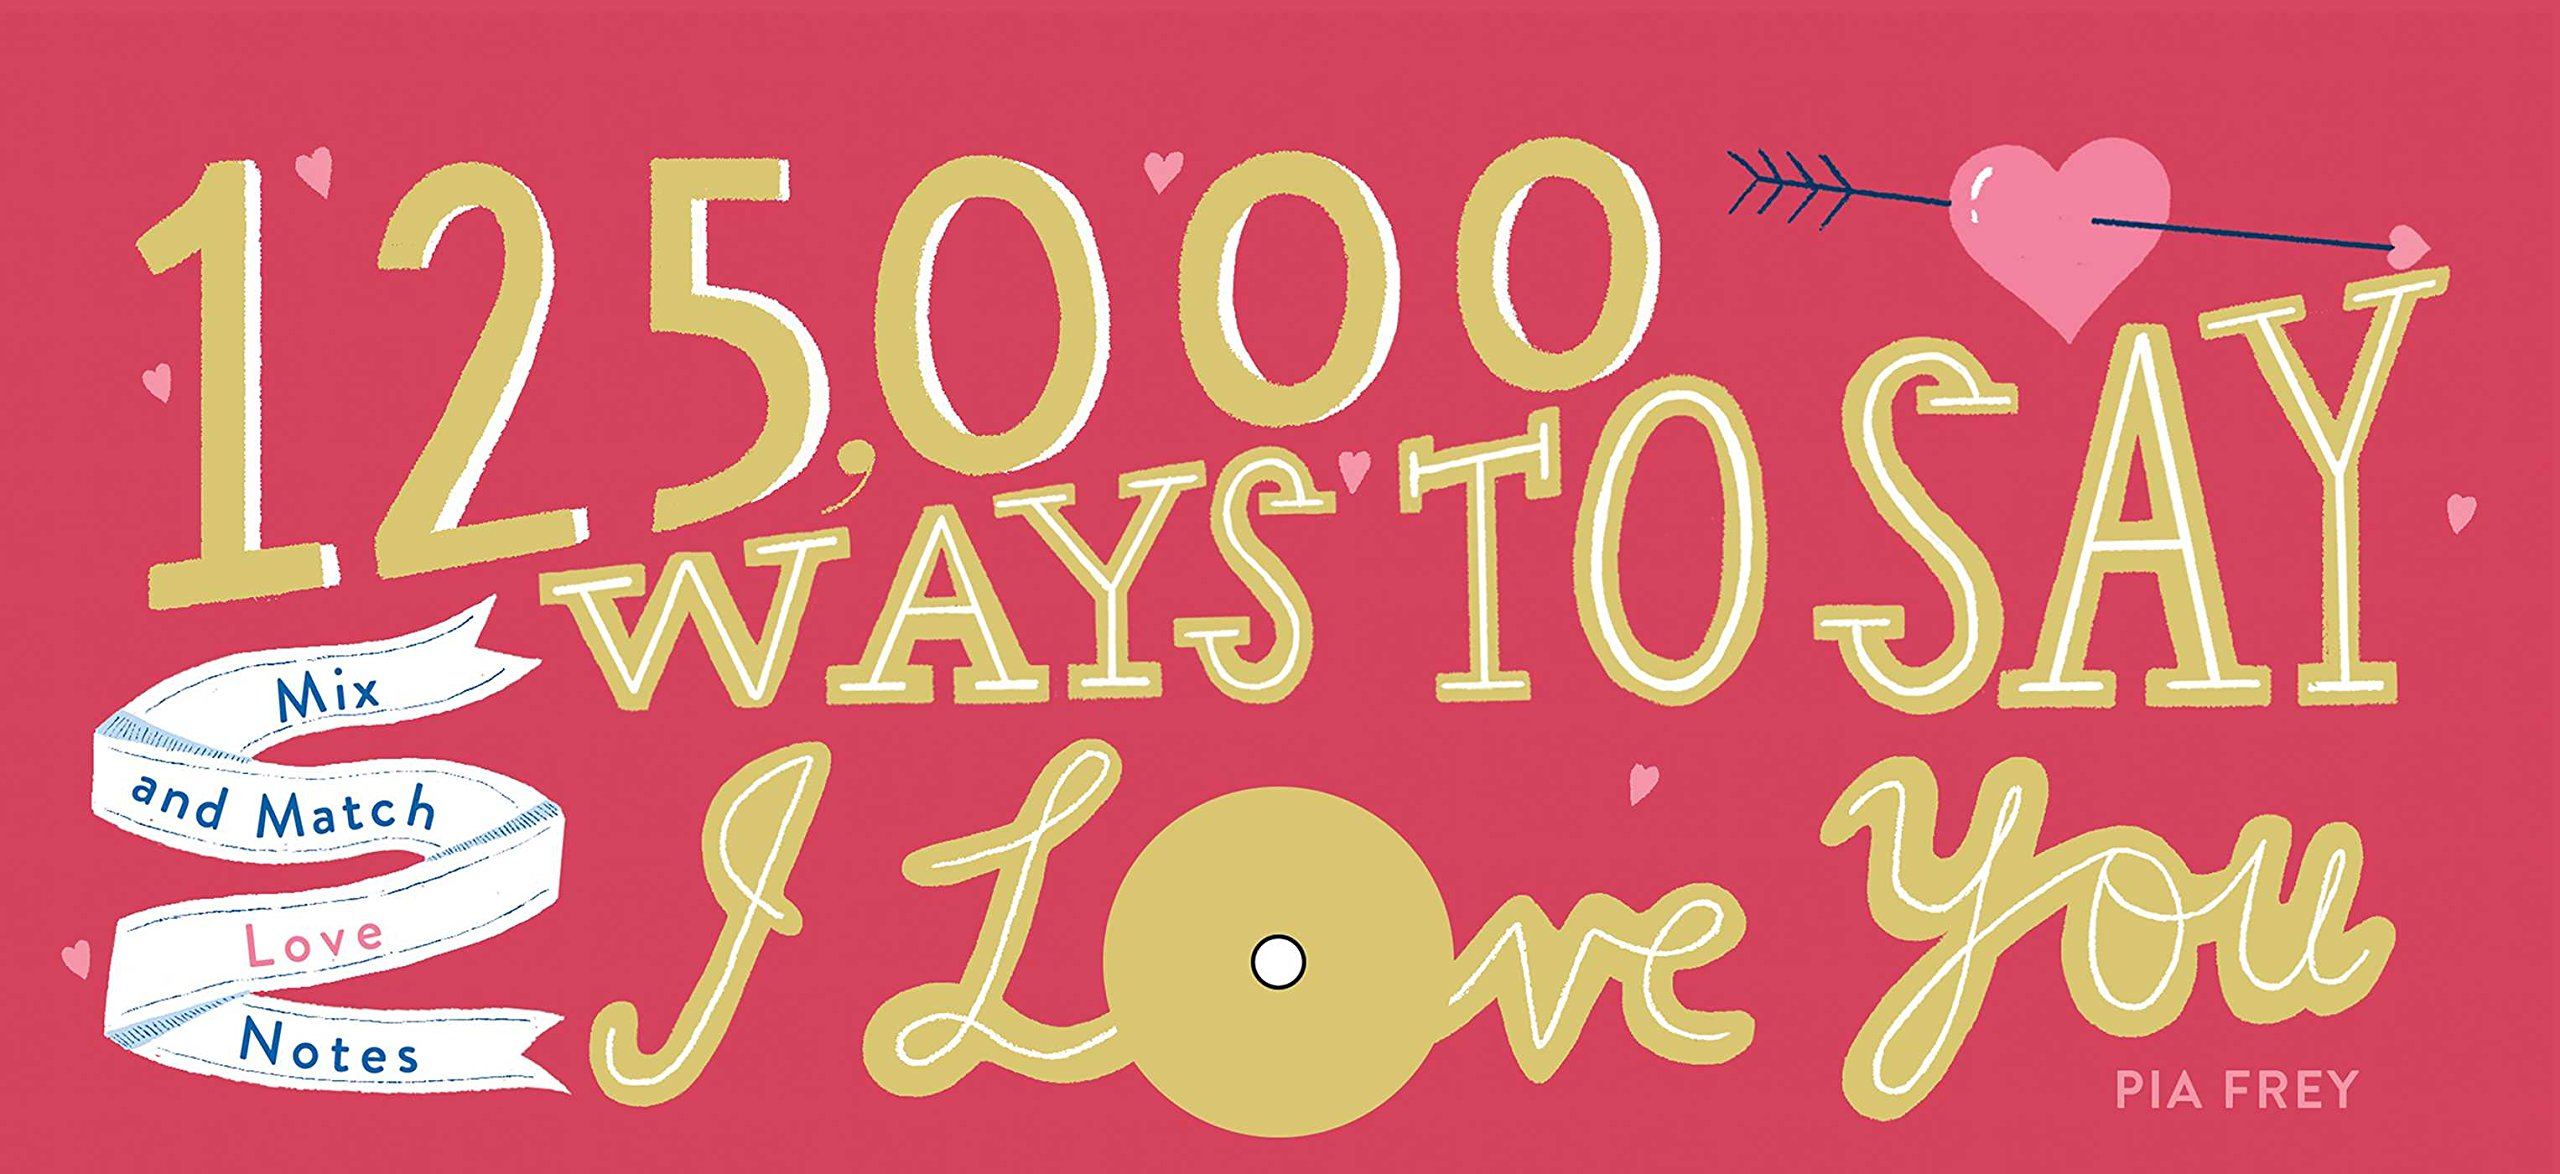 125000 Ways to Say I Love You: Mix and Match Love Notes